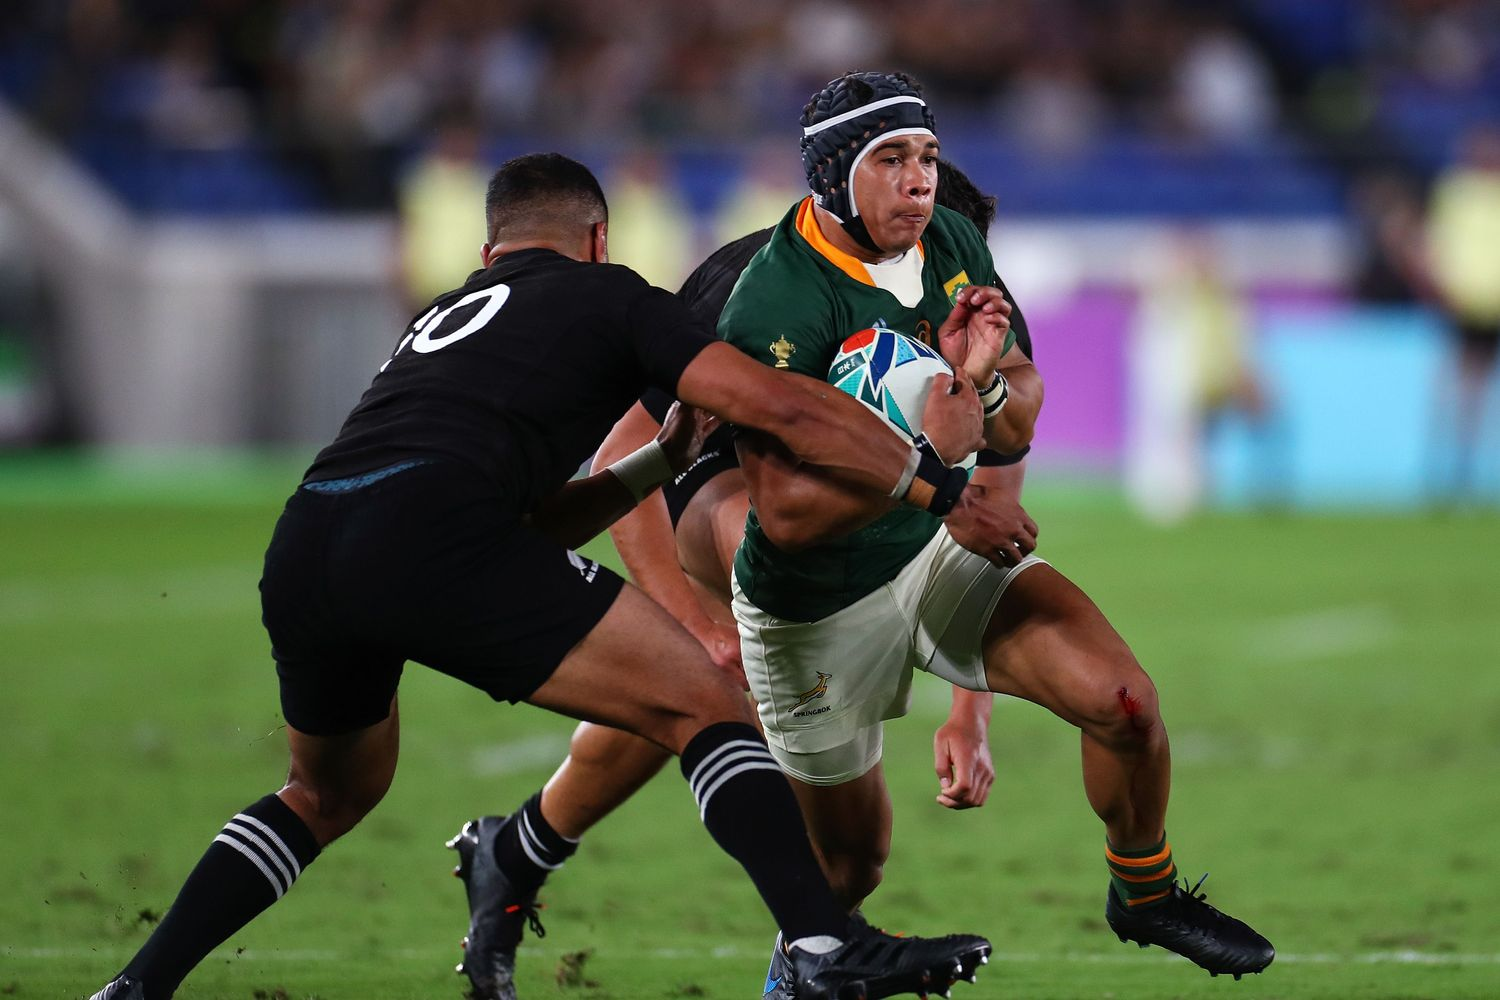 The South African Cheslin Kolbe fighting New Zealand.